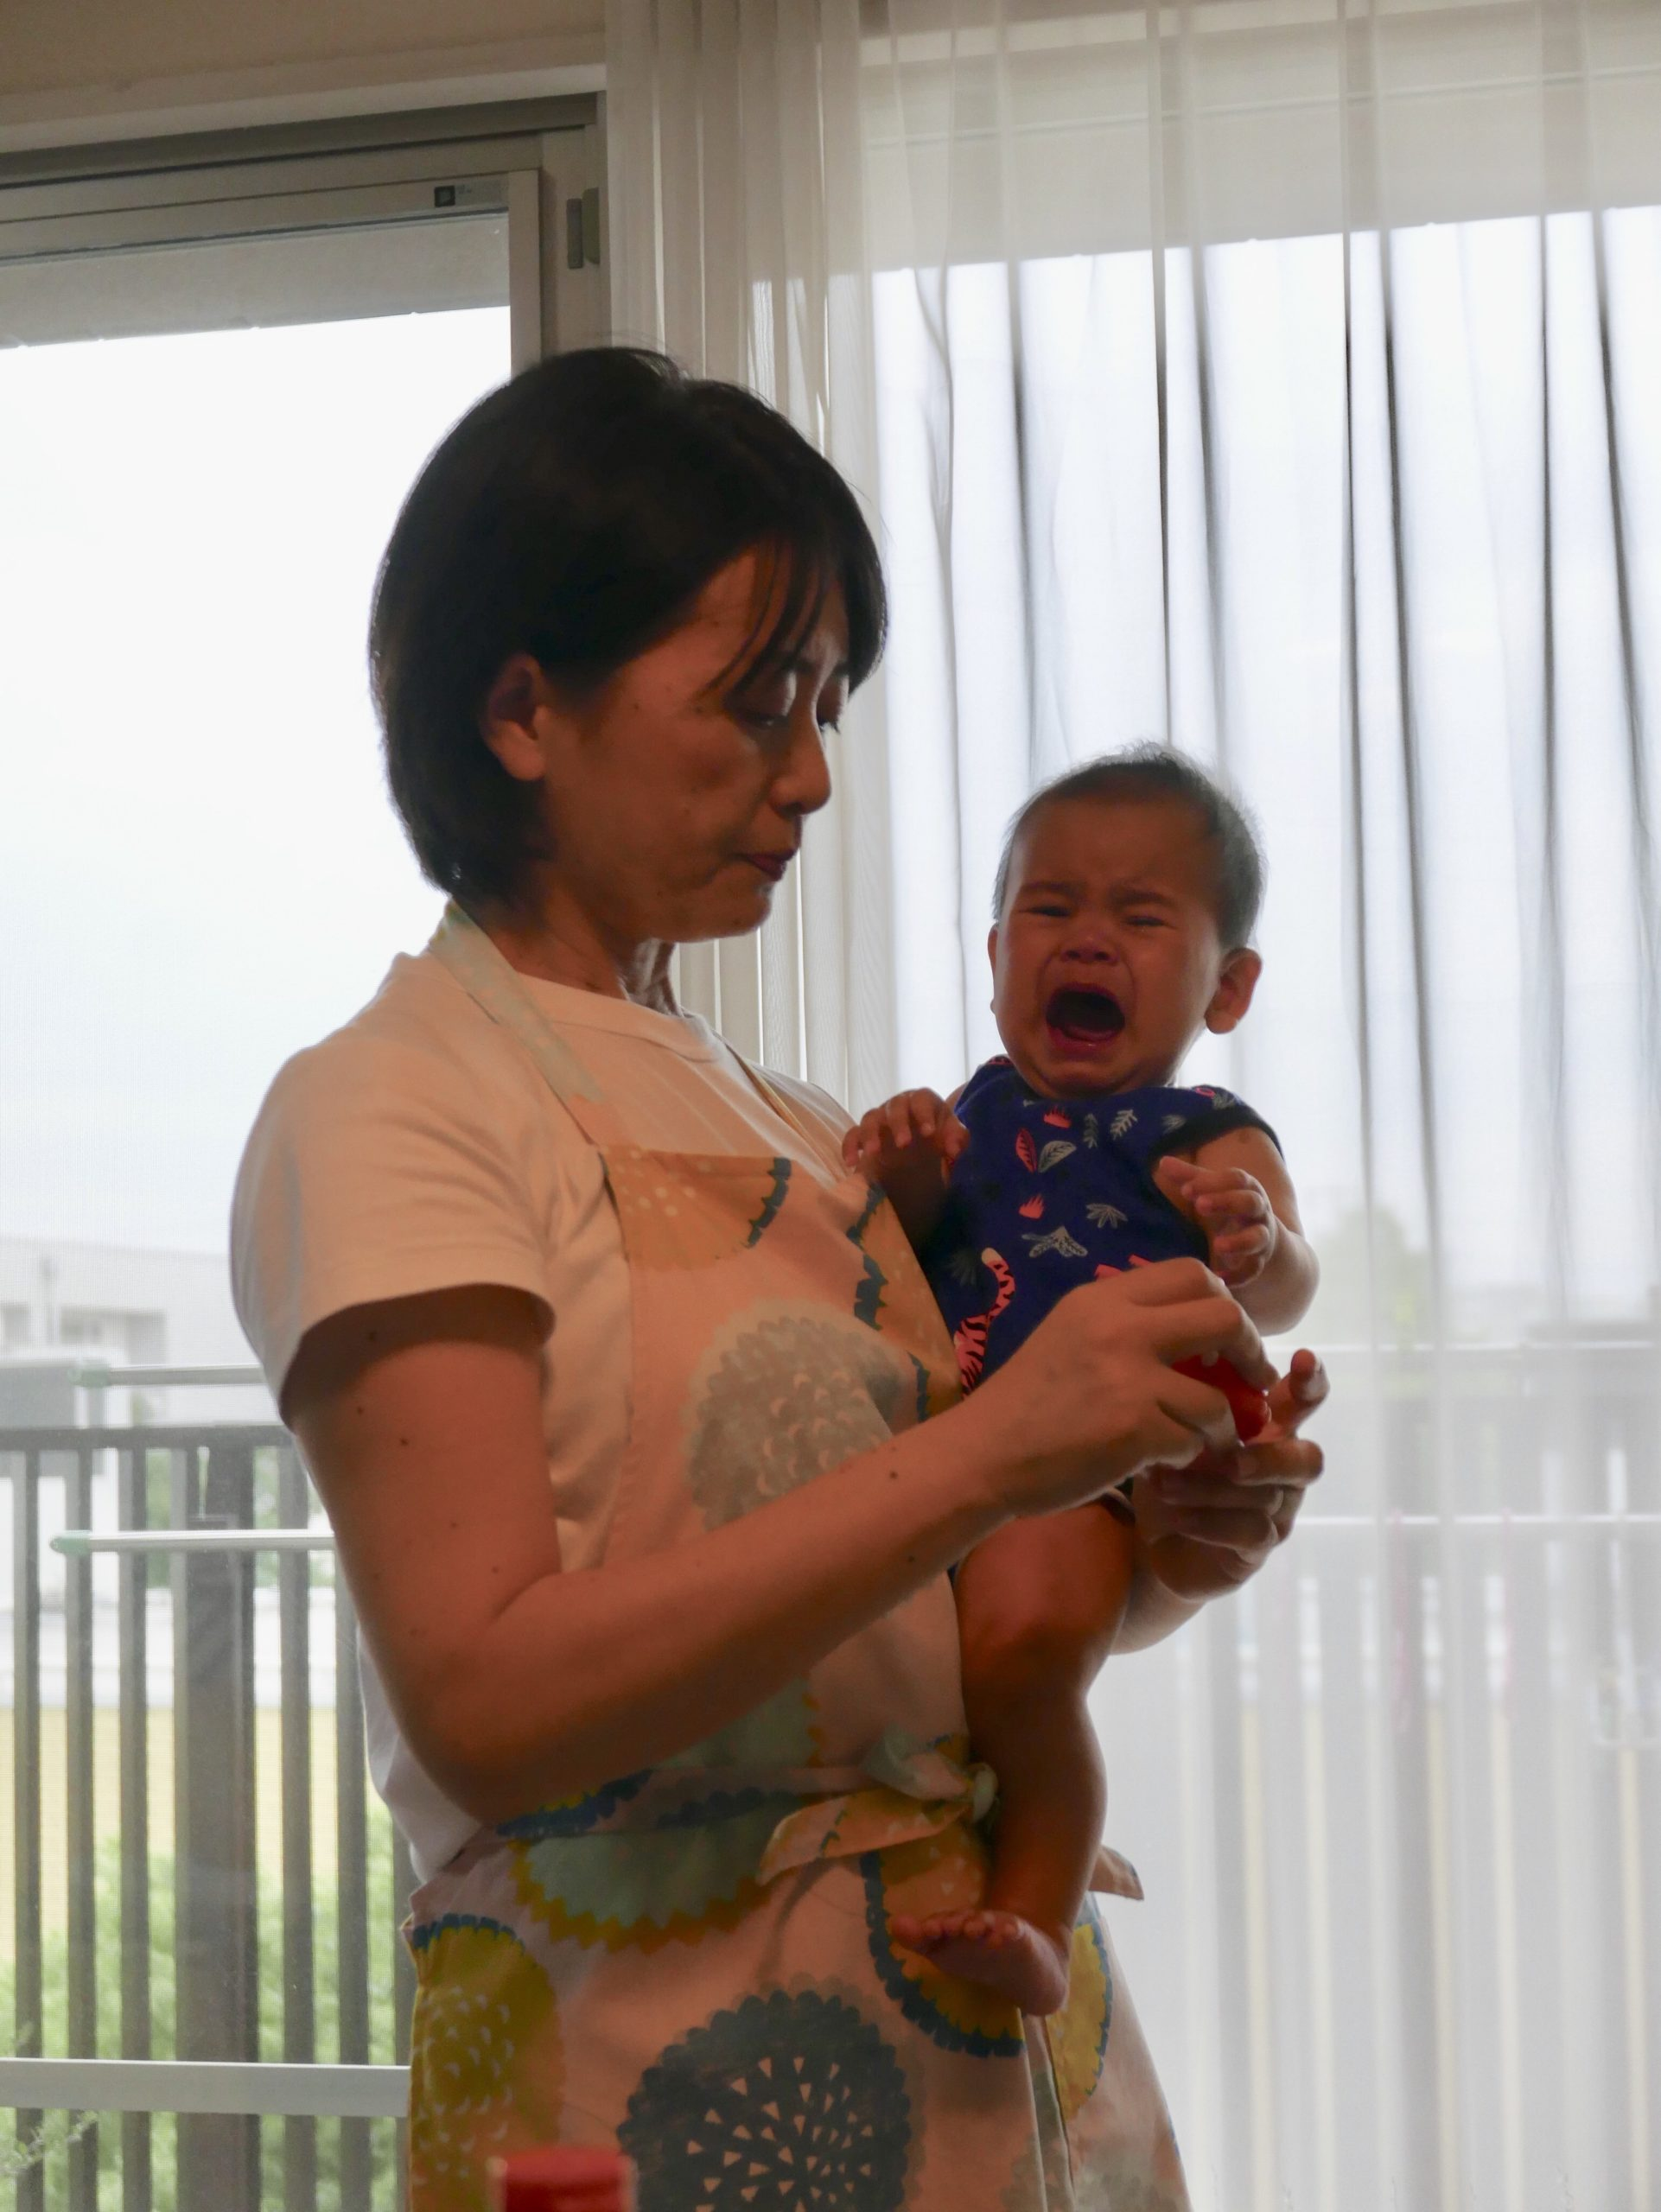 Japanese woman holding crying baby